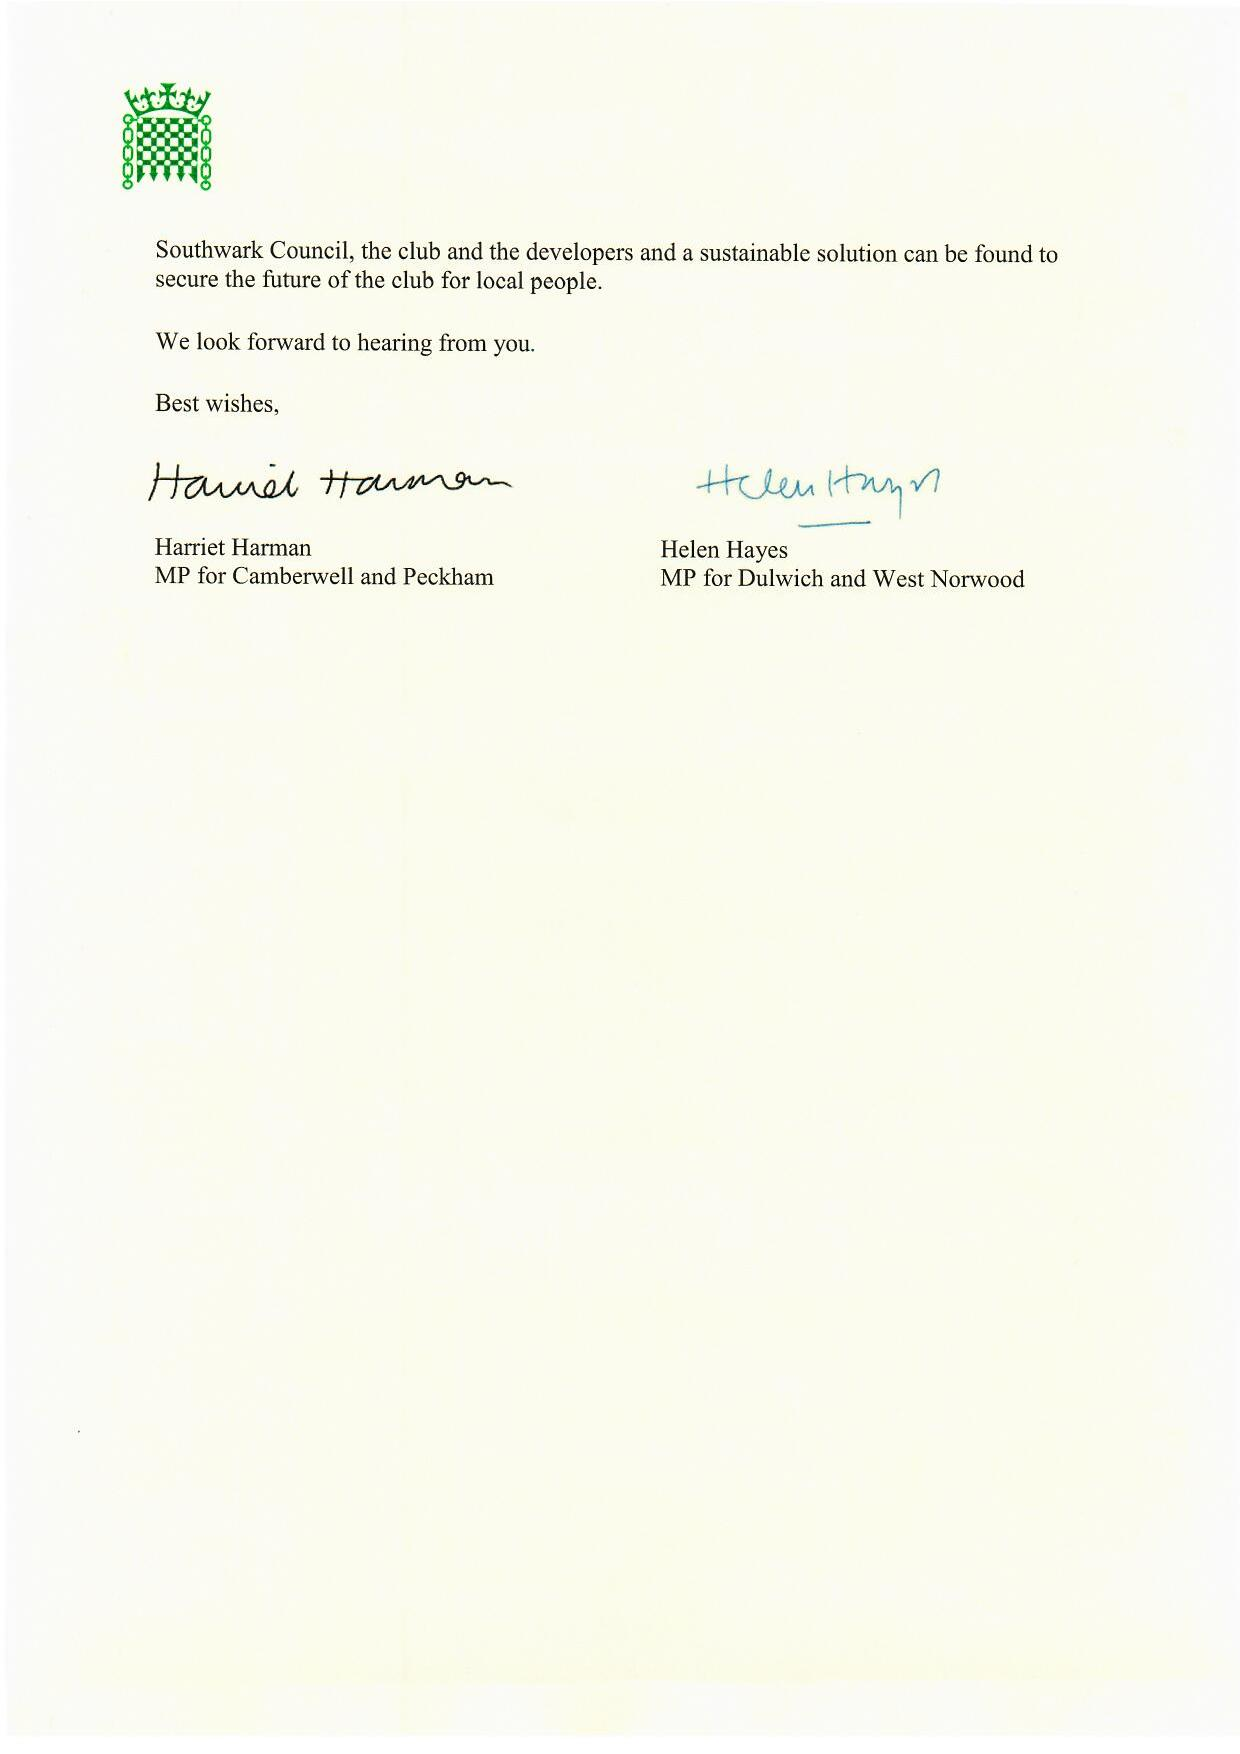 Tracy_Crouch_Minister_for_Sport_-_08.03.18-page-002.jpg